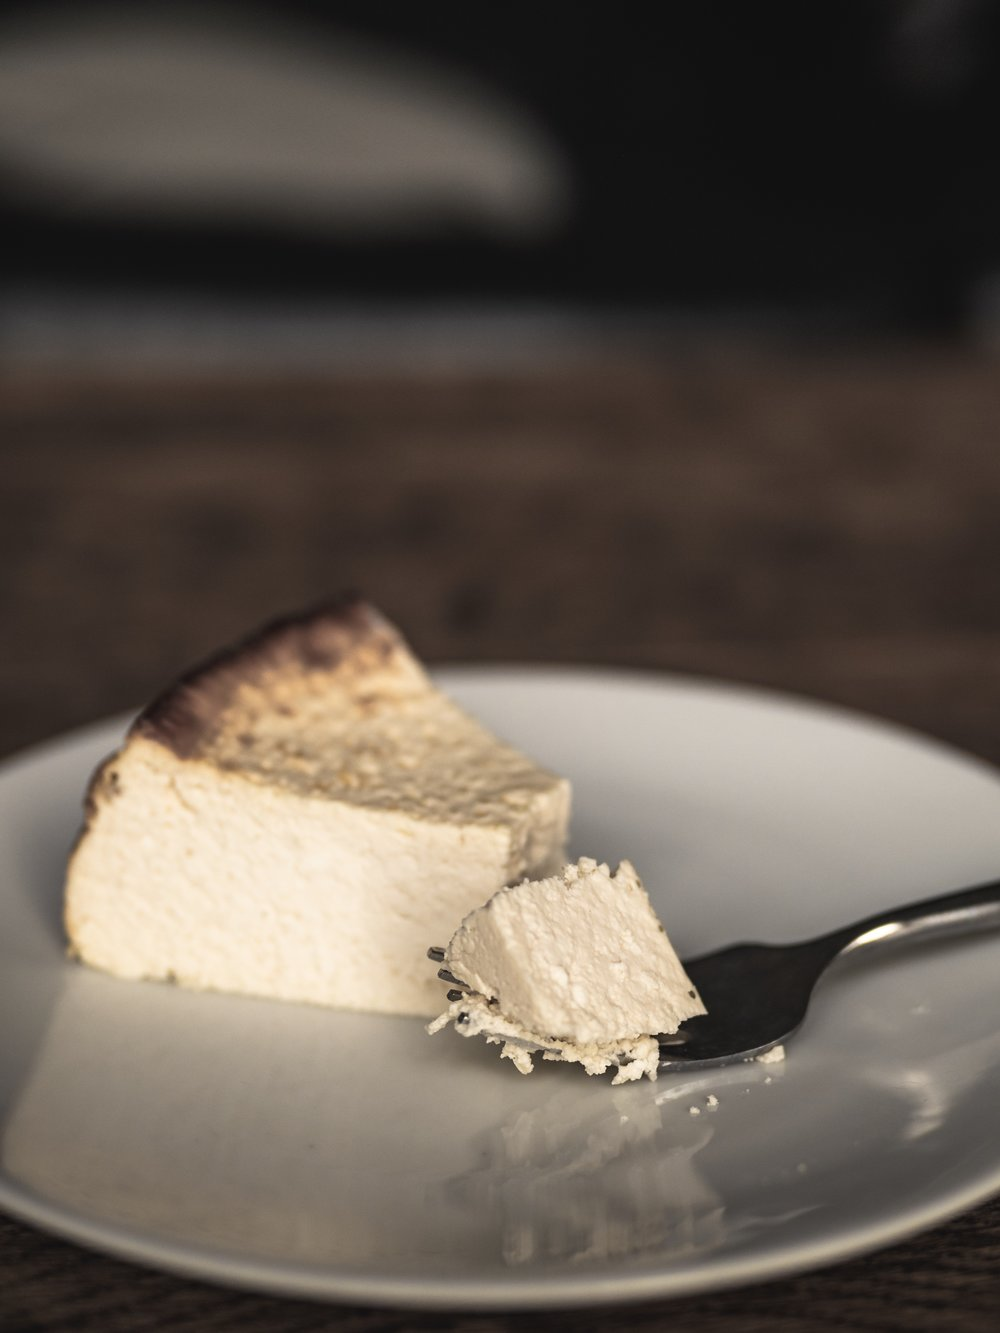 Zero Carb Carnivore Cheesecake New York Recipe Homemade Cooking Baking Baked Dessert Animal based Diet Weight Loss